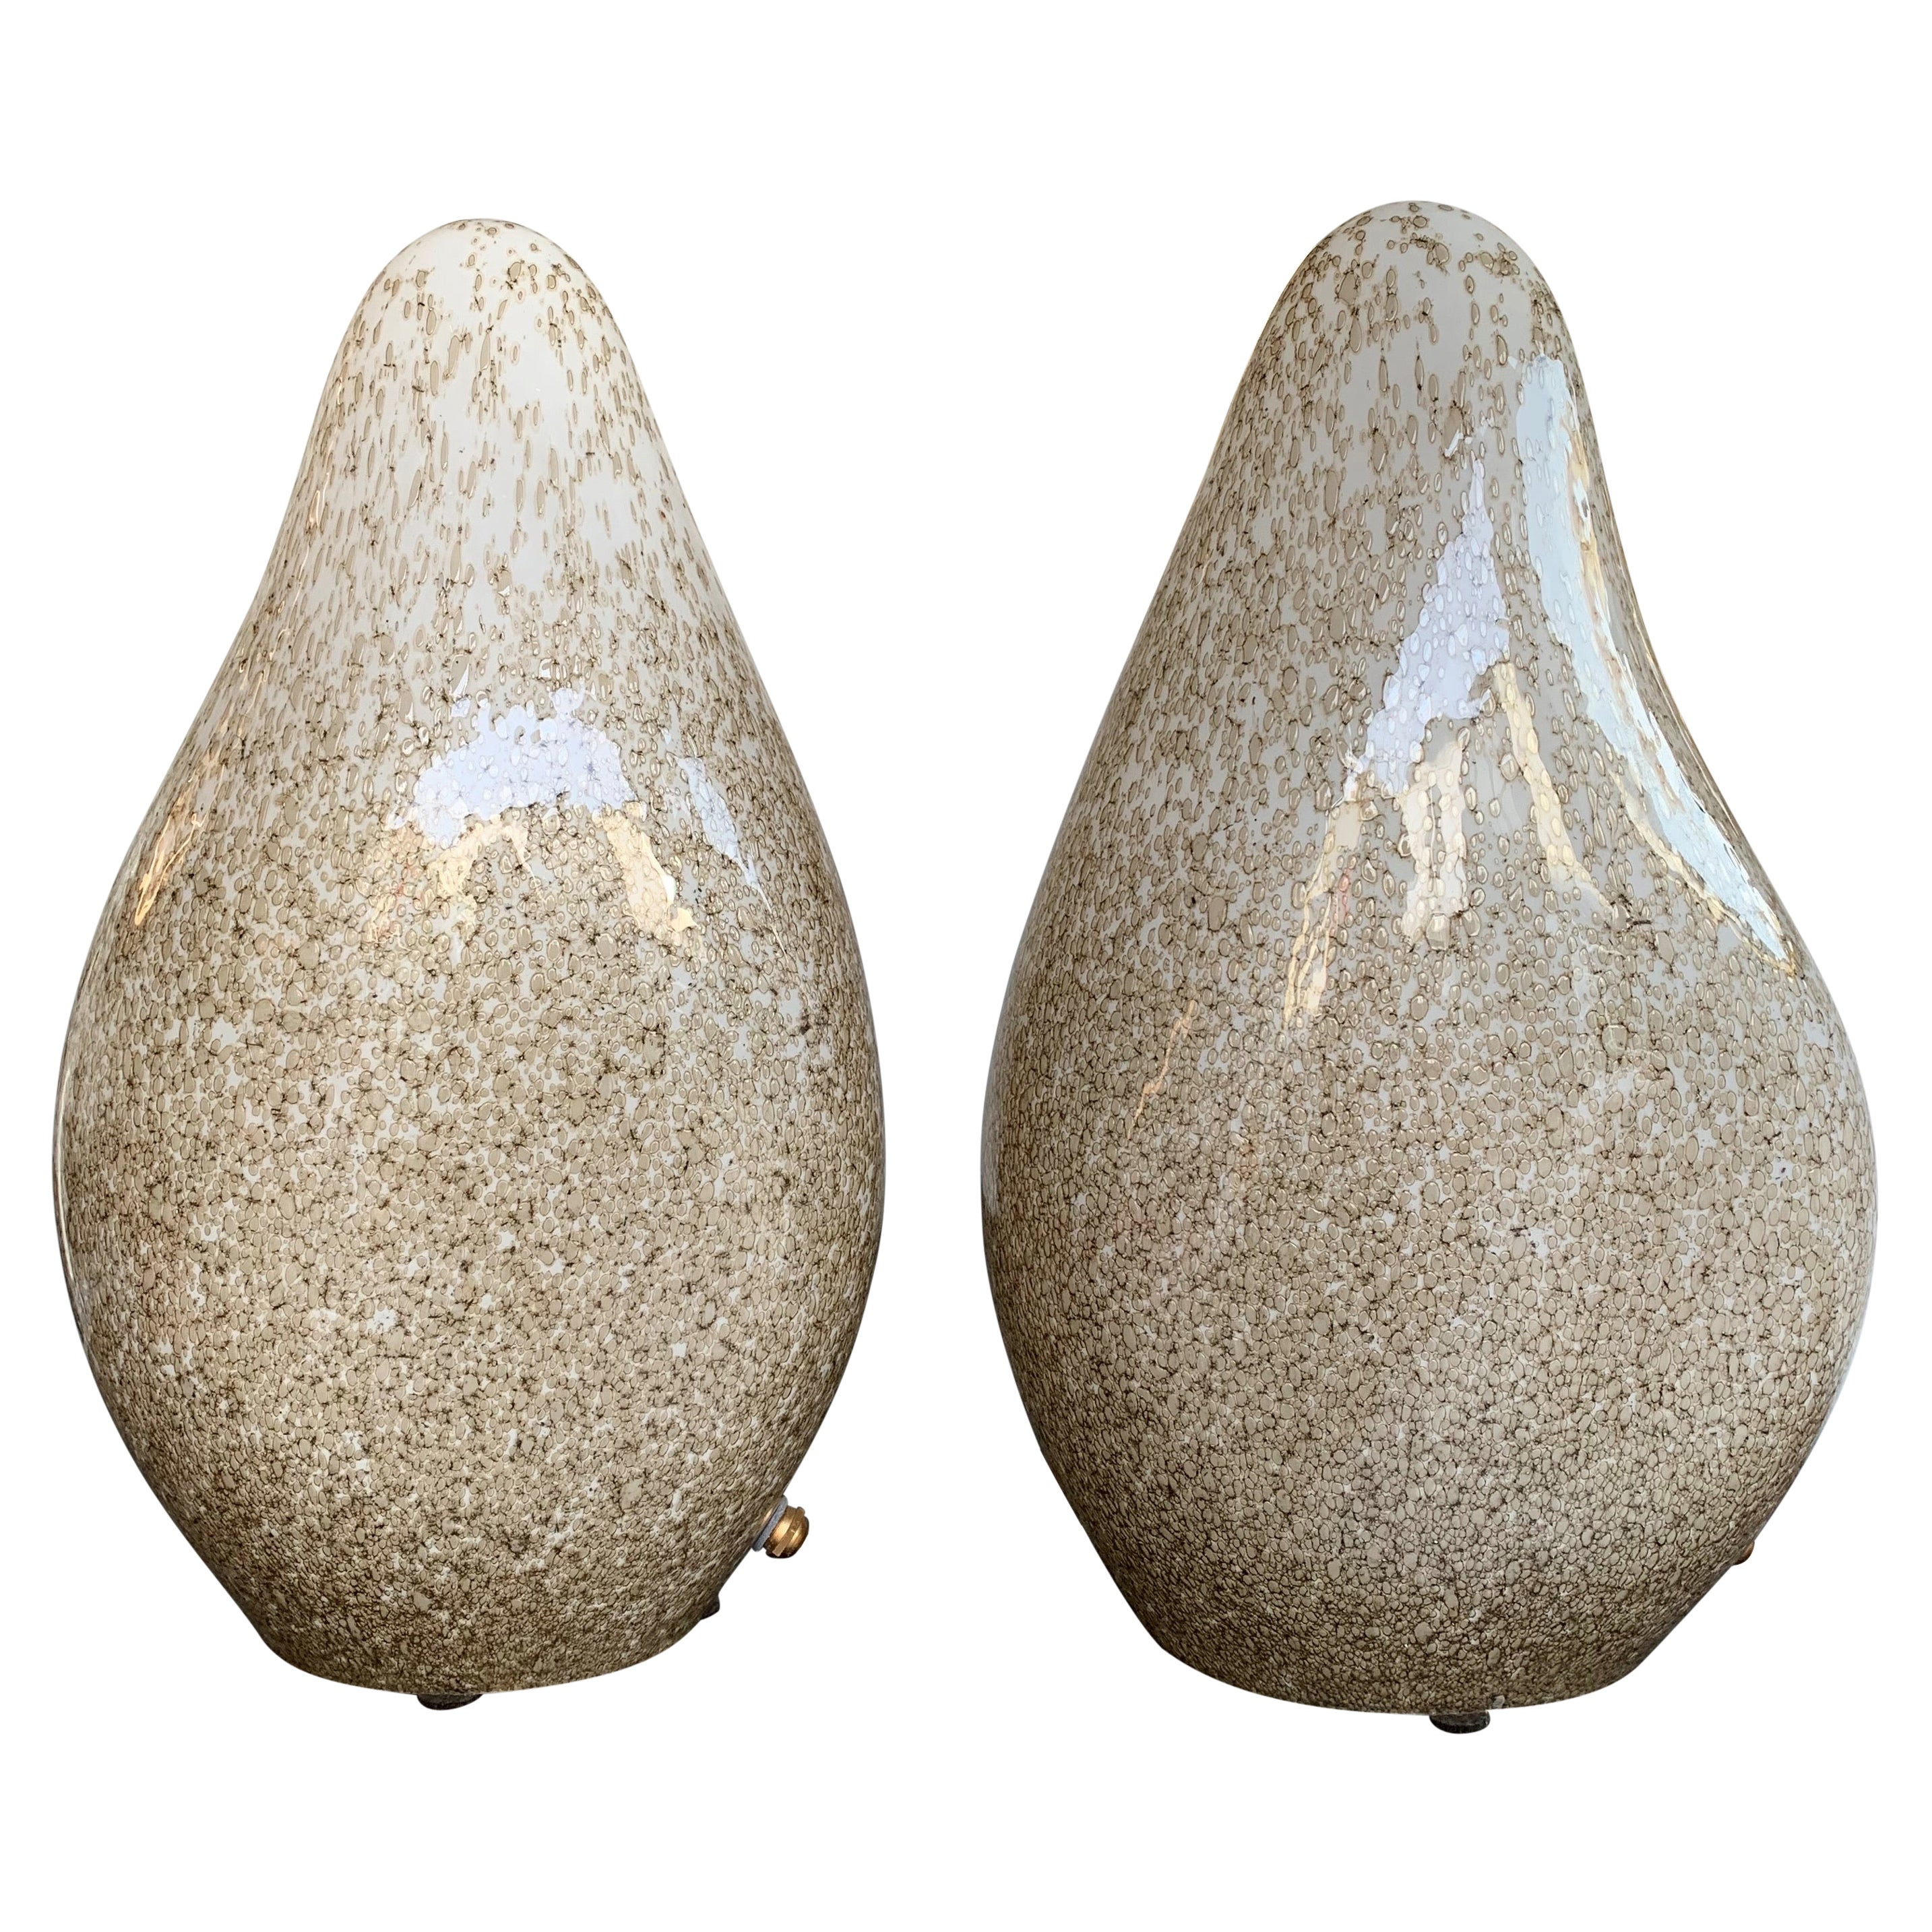 Pair of Glass Lamps by La Murrina, Italy, 1970s